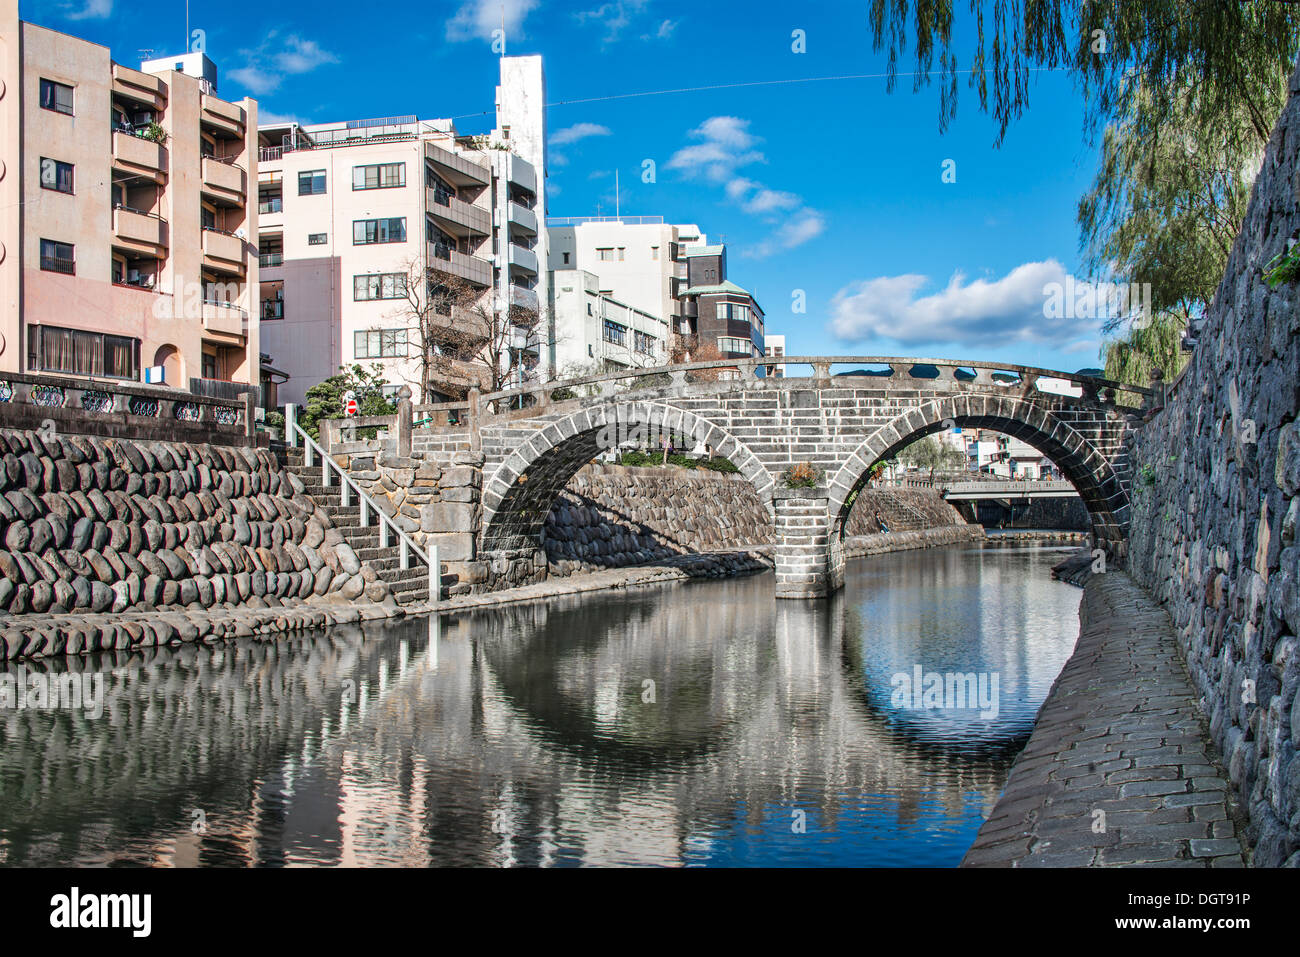 Nagasaki, Japan at Spectacles 'Megane' Bridge. - Stock Image